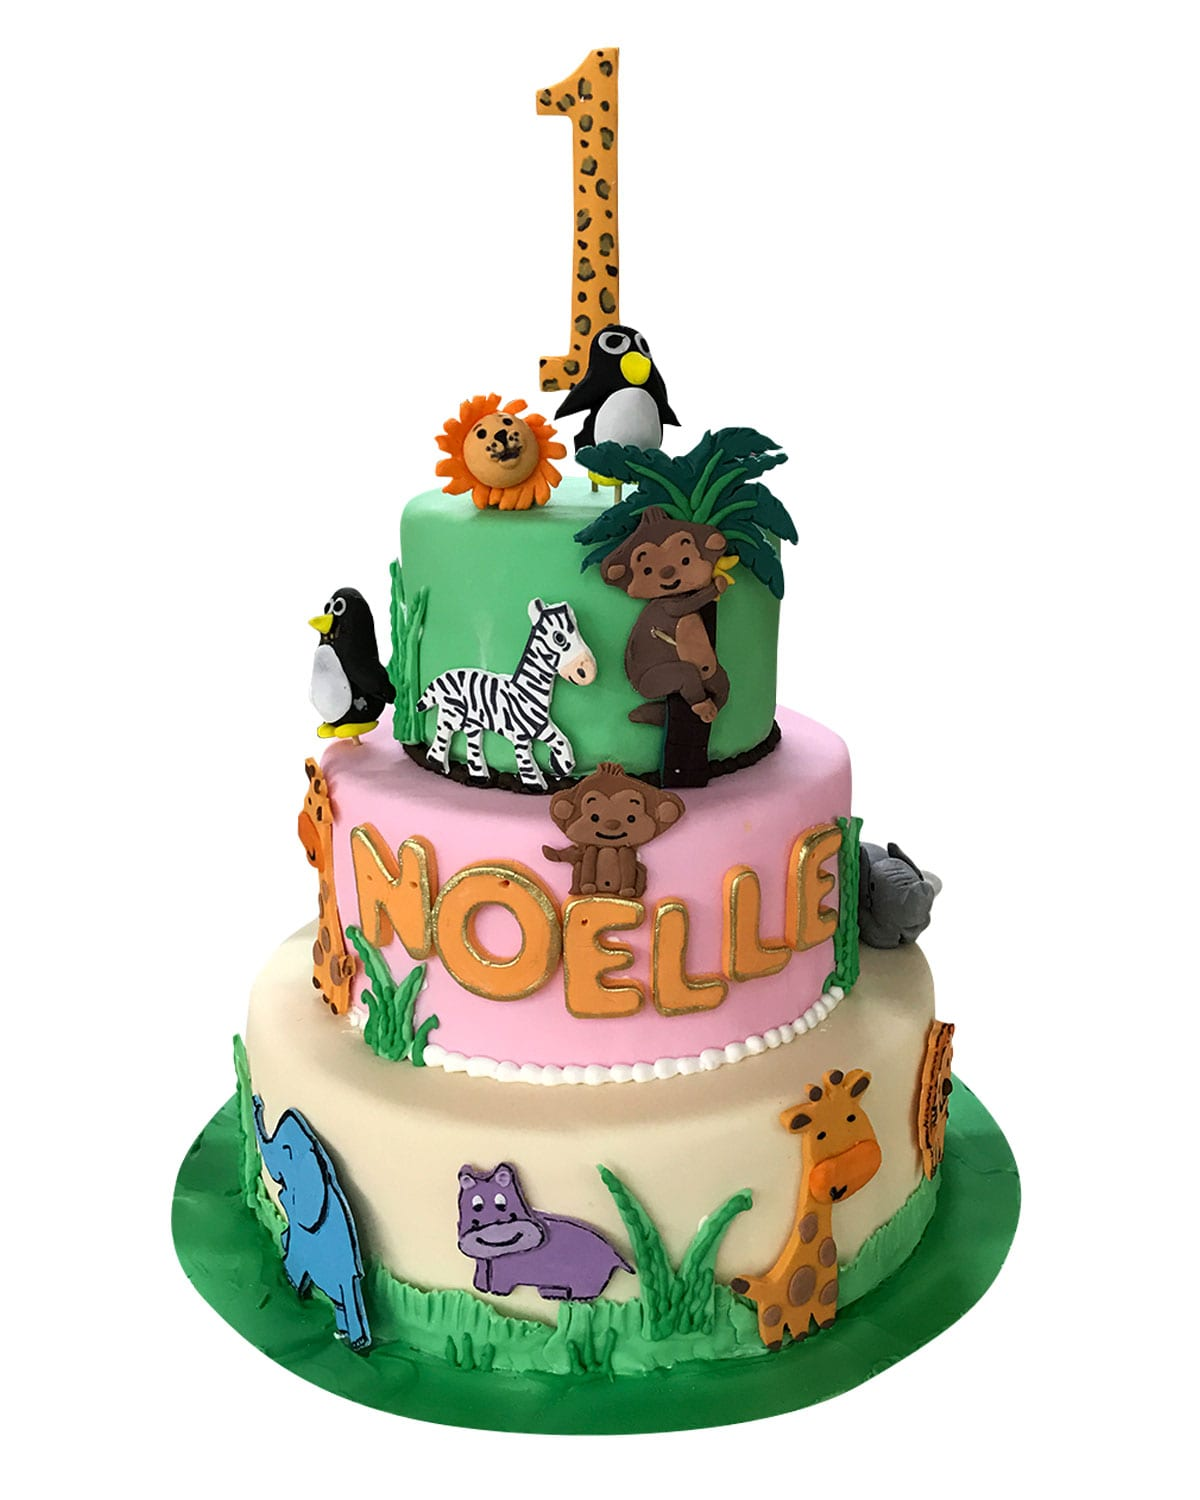 At Reddys Bakery We Create Custom Birthday Cakes Made To Order In Any Design You Can Imagine Lets Something WOW For Your Special